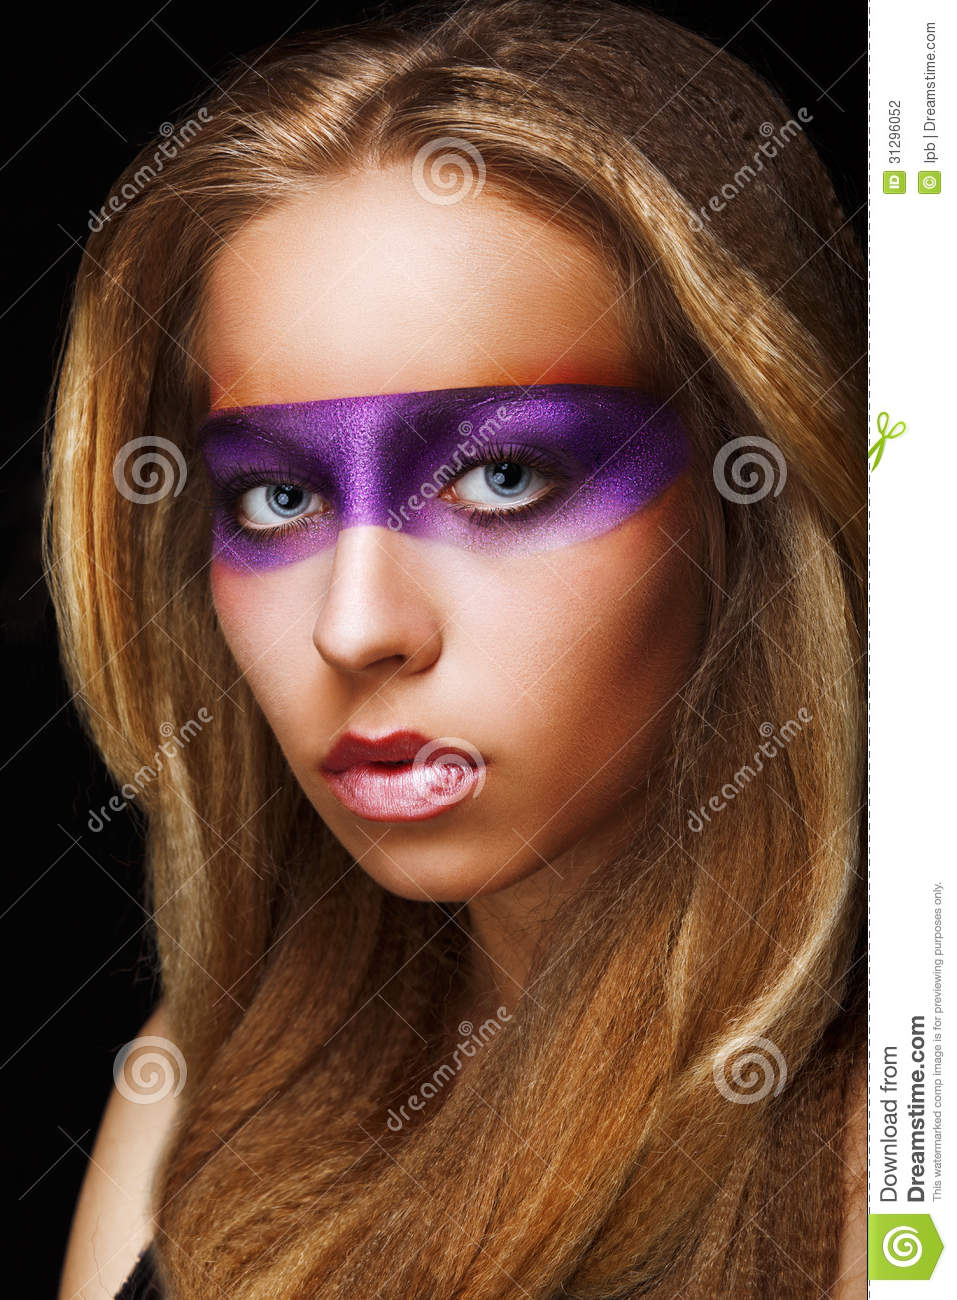 Fantasy Coloring Trendy Woman With Shiny Colorful Makeup